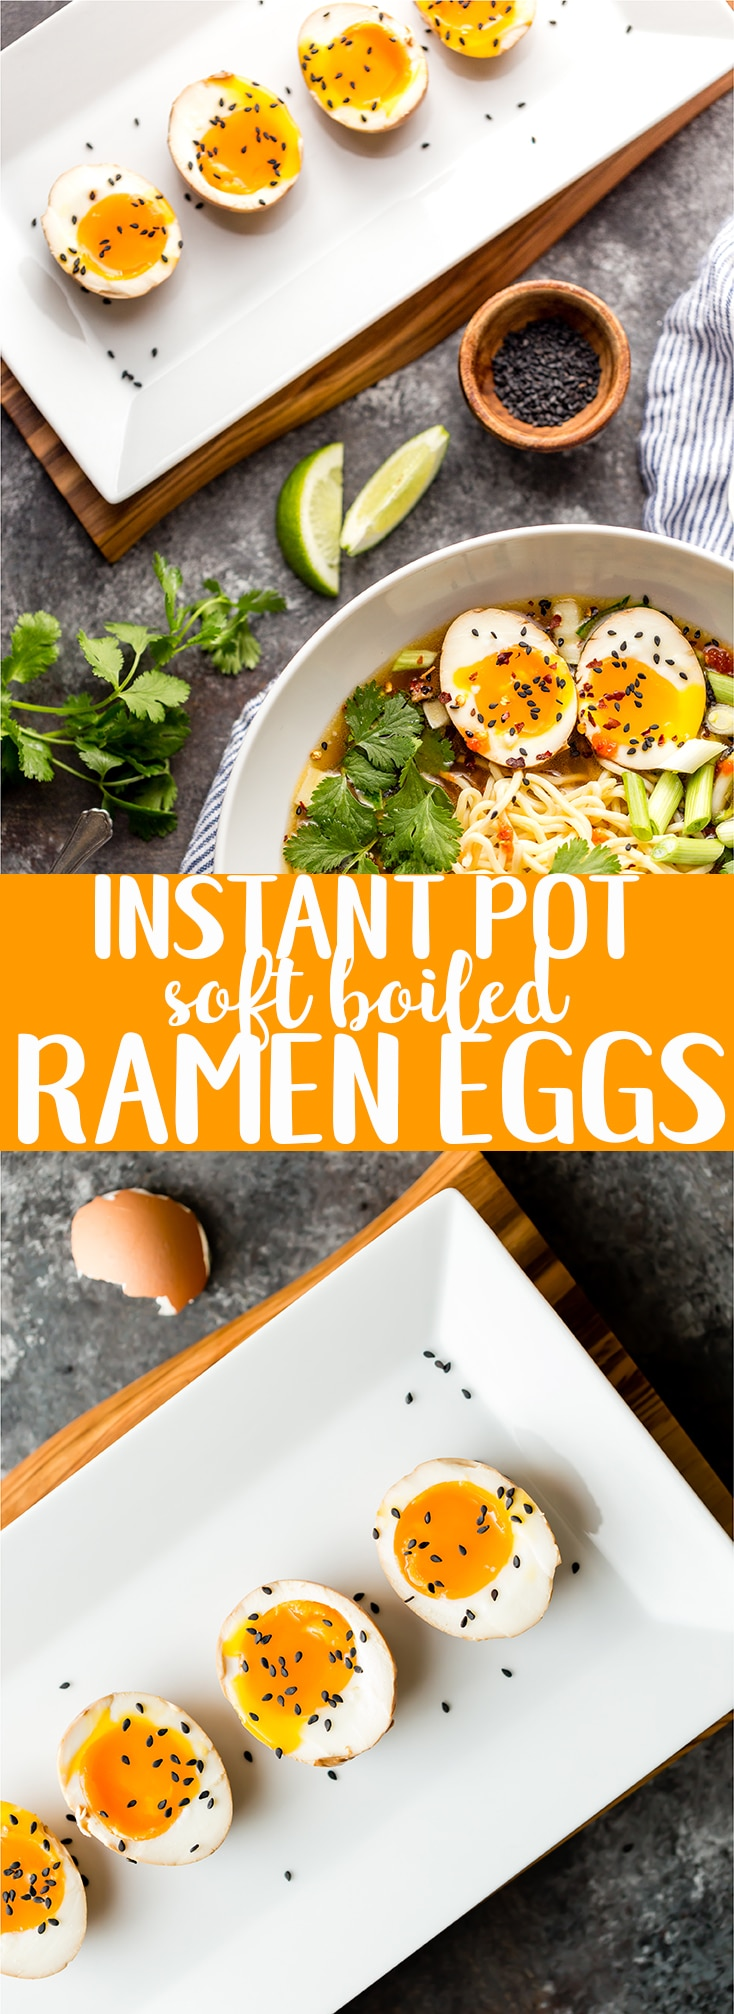 This Instant Pot Ramen Egg Recipe will make the perfect topping for your ramen at home! | Soft boiled Egg for ramen | Instant pot boiled egg | ramen egg recipe | Instant pot ramen egg | how to make a ramen egg | Japanese Marinated Egg | Easy soft cooked ramen egg